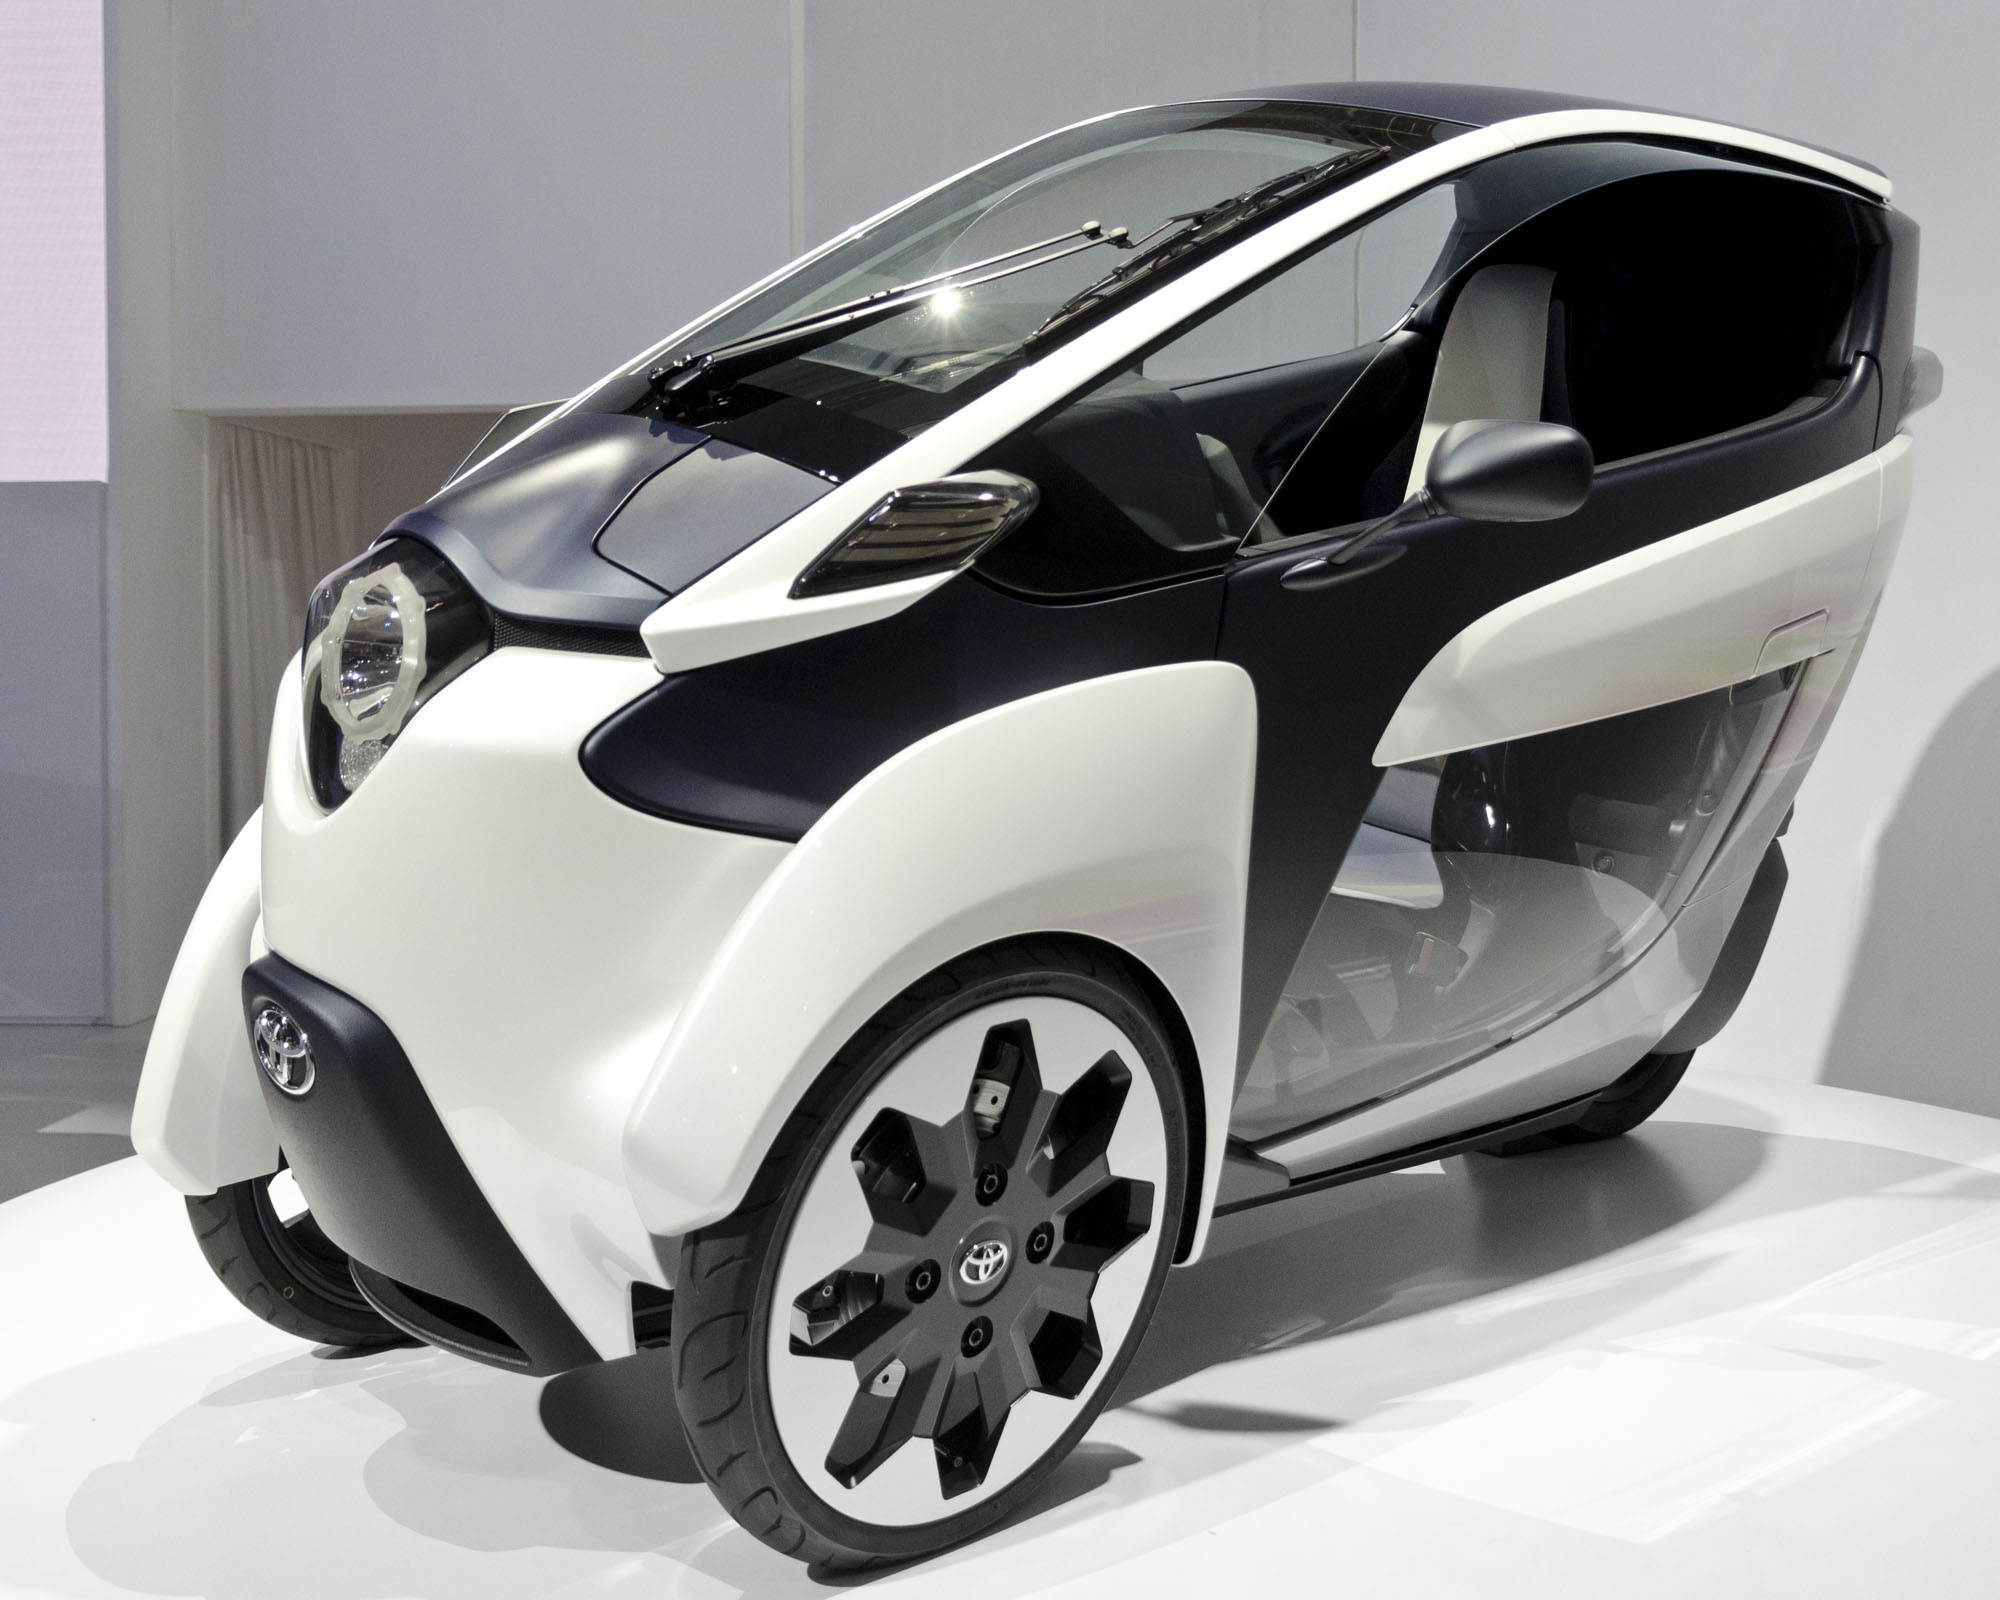 toyota test the waters at ted conference with its zippy new city runabout. Black Bedroom Furniture Sets. Home Design Ideas